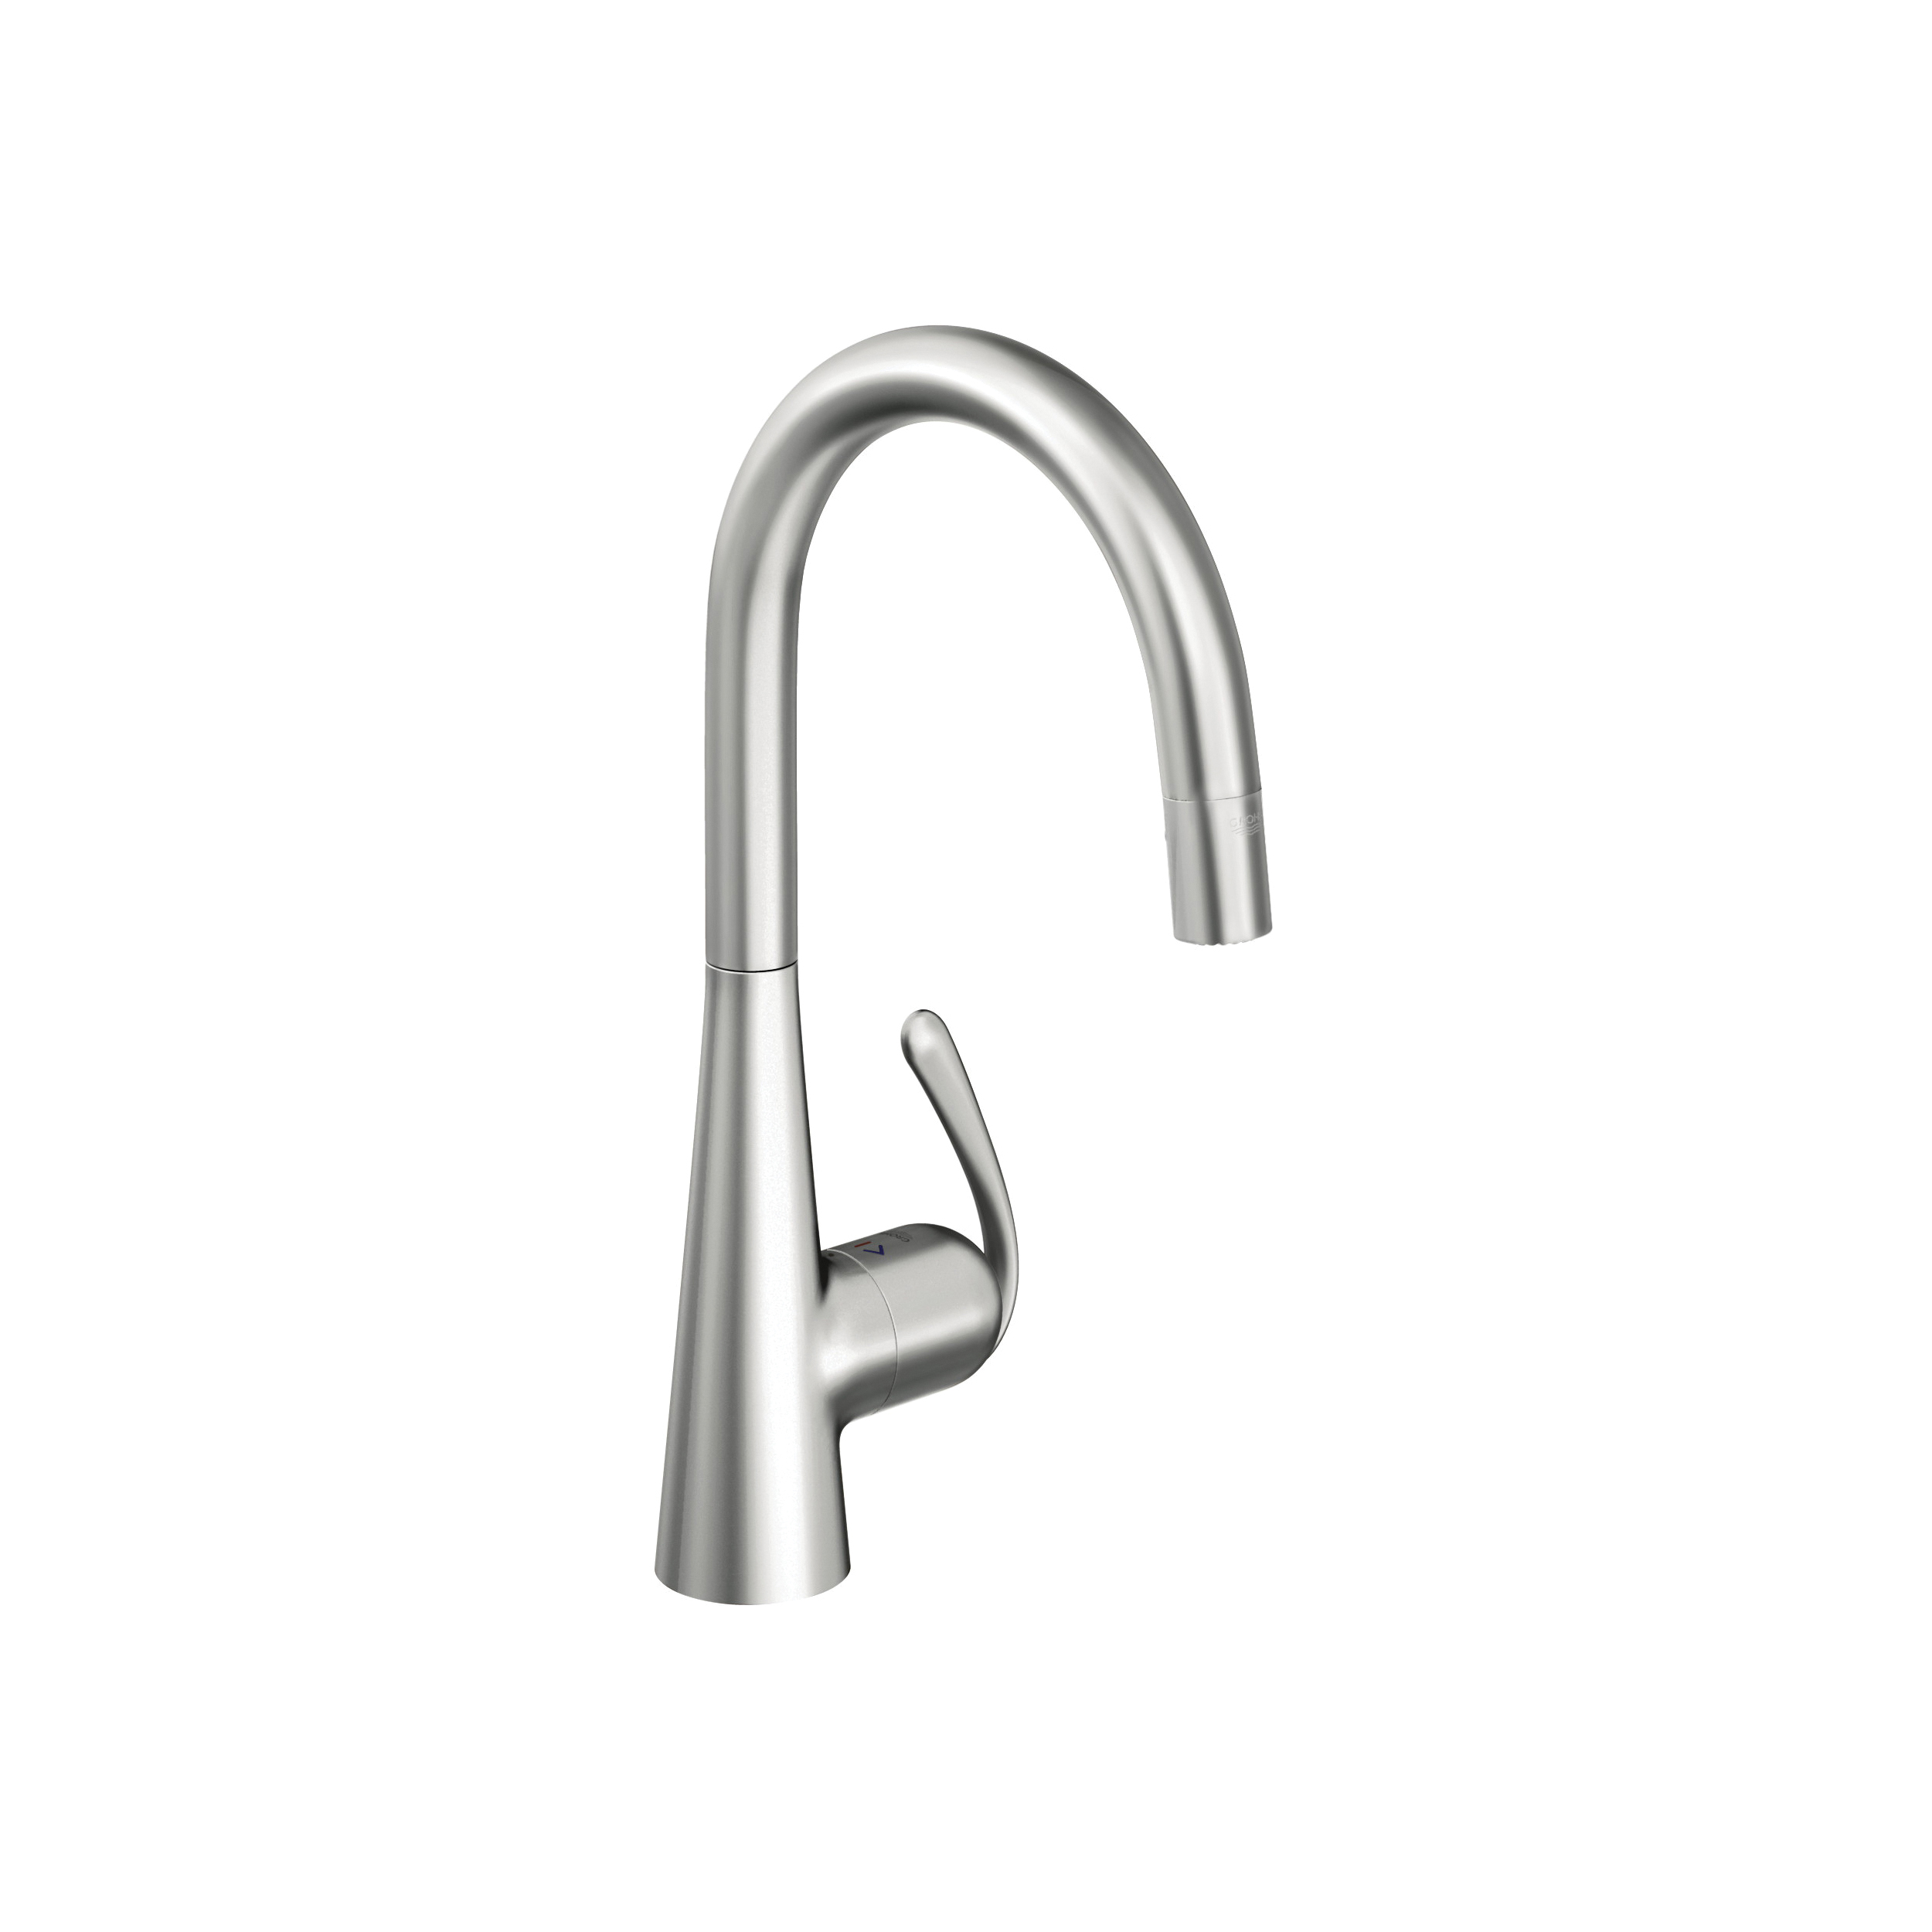 GROHE 32226SD0 Ladylux3 Pro Sink Mixer, 1.75 gpm, 1 Handle, Brushed Stainless Steel, Import